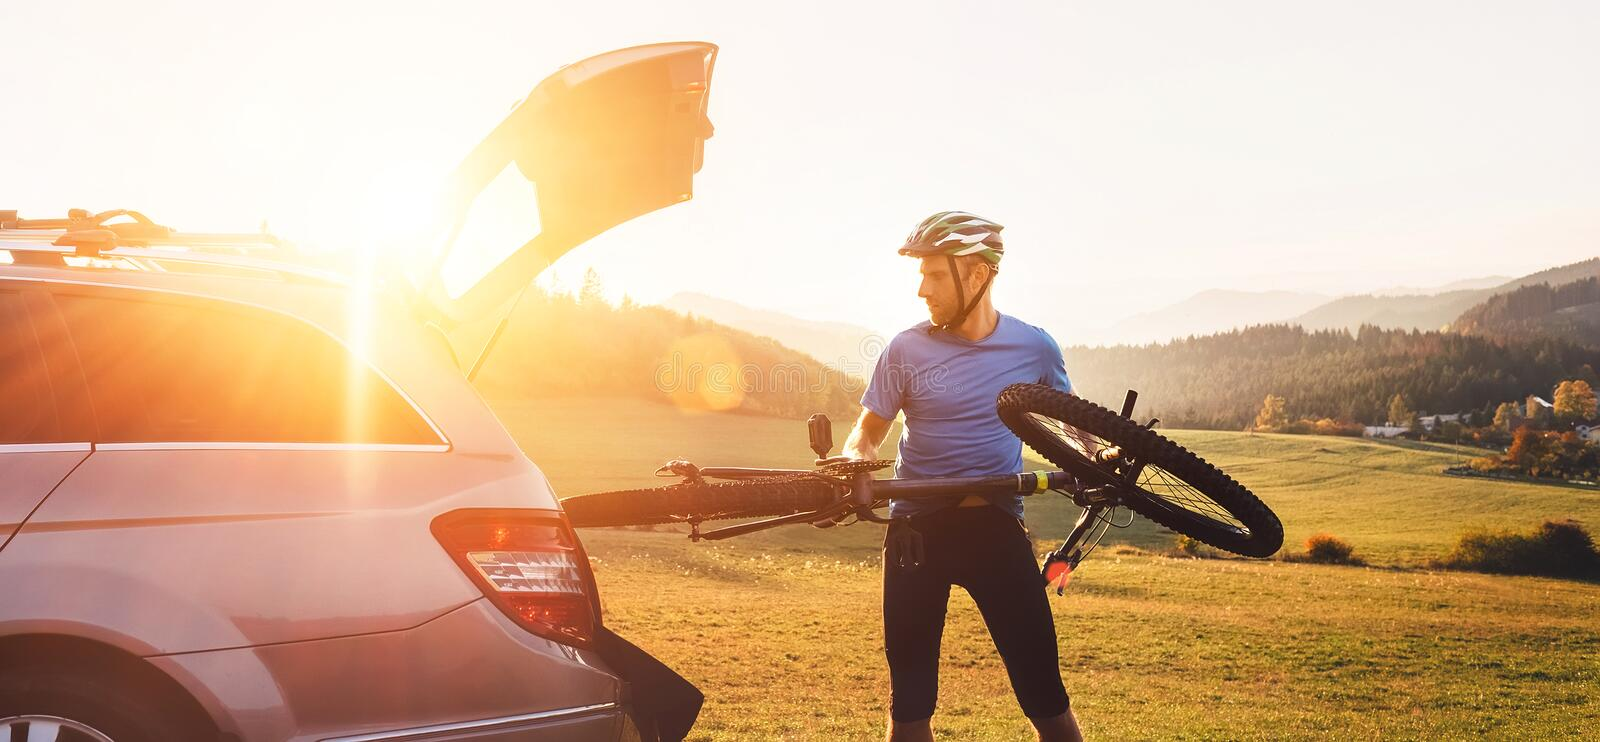 Man put his bicycle in the trunk of a car opt fl stock images